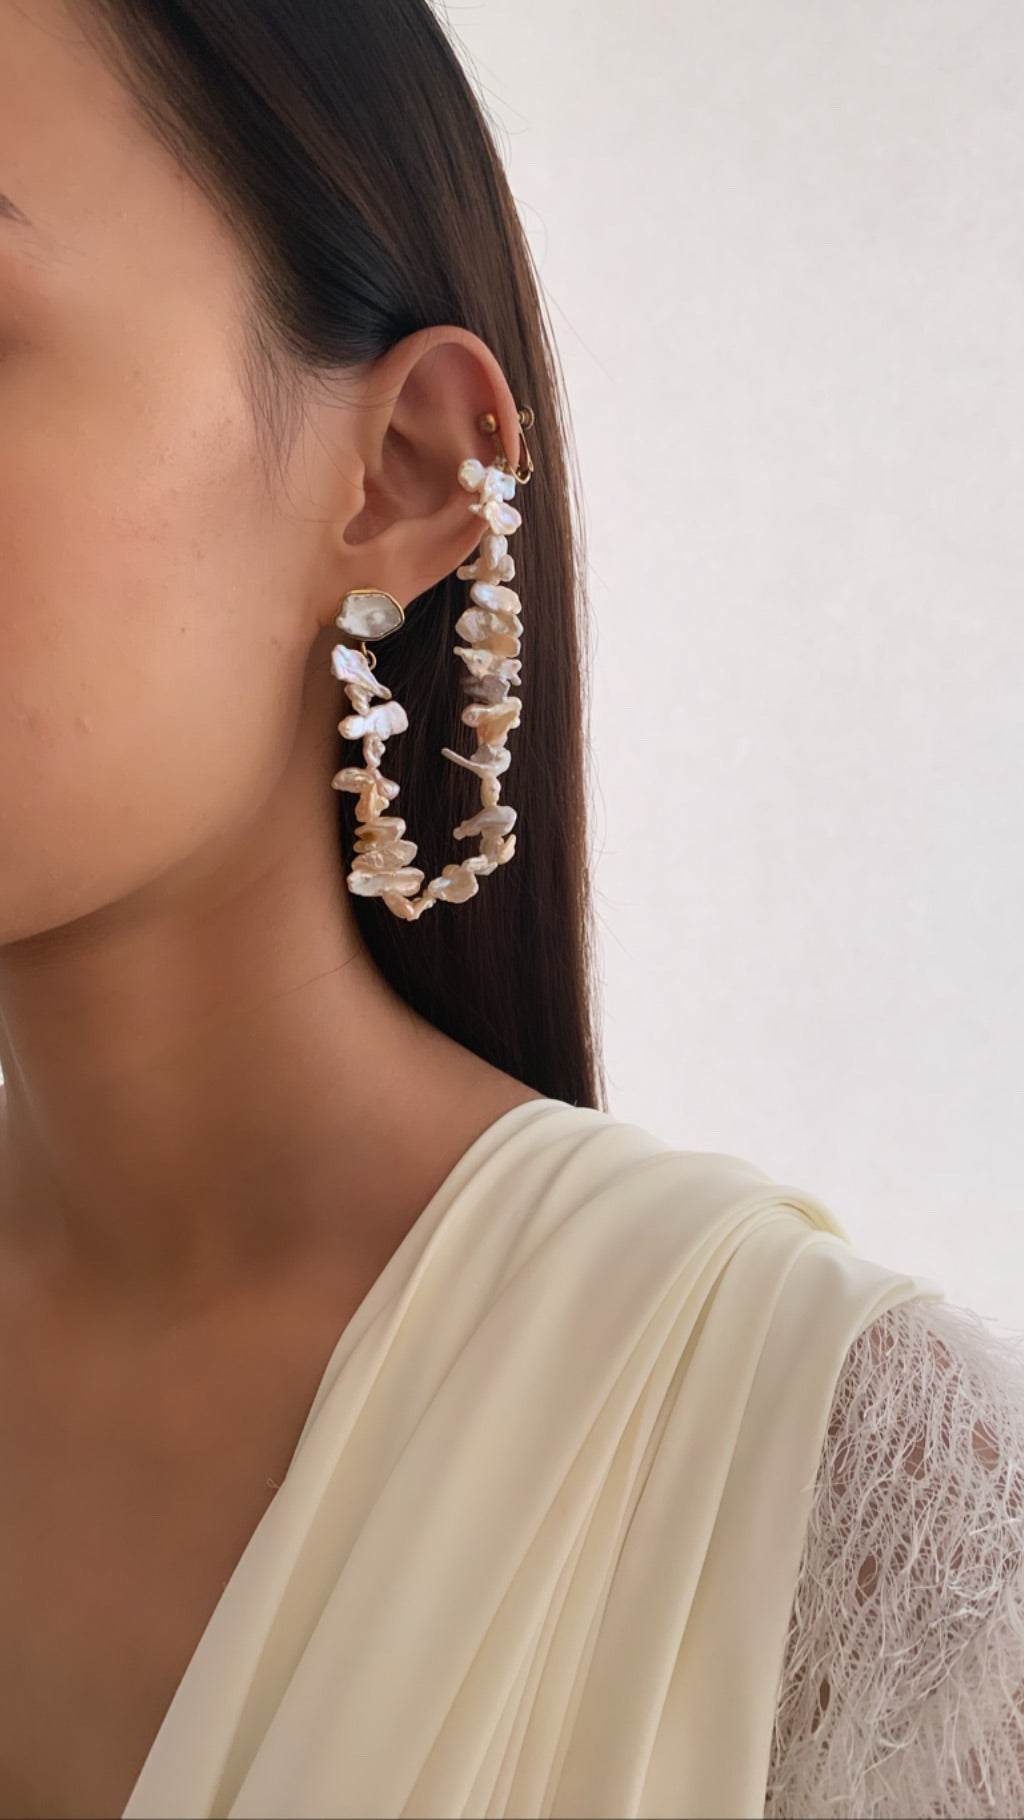 'Feeling This, Feeling That' Earring - Bhaavya Bhatnagar